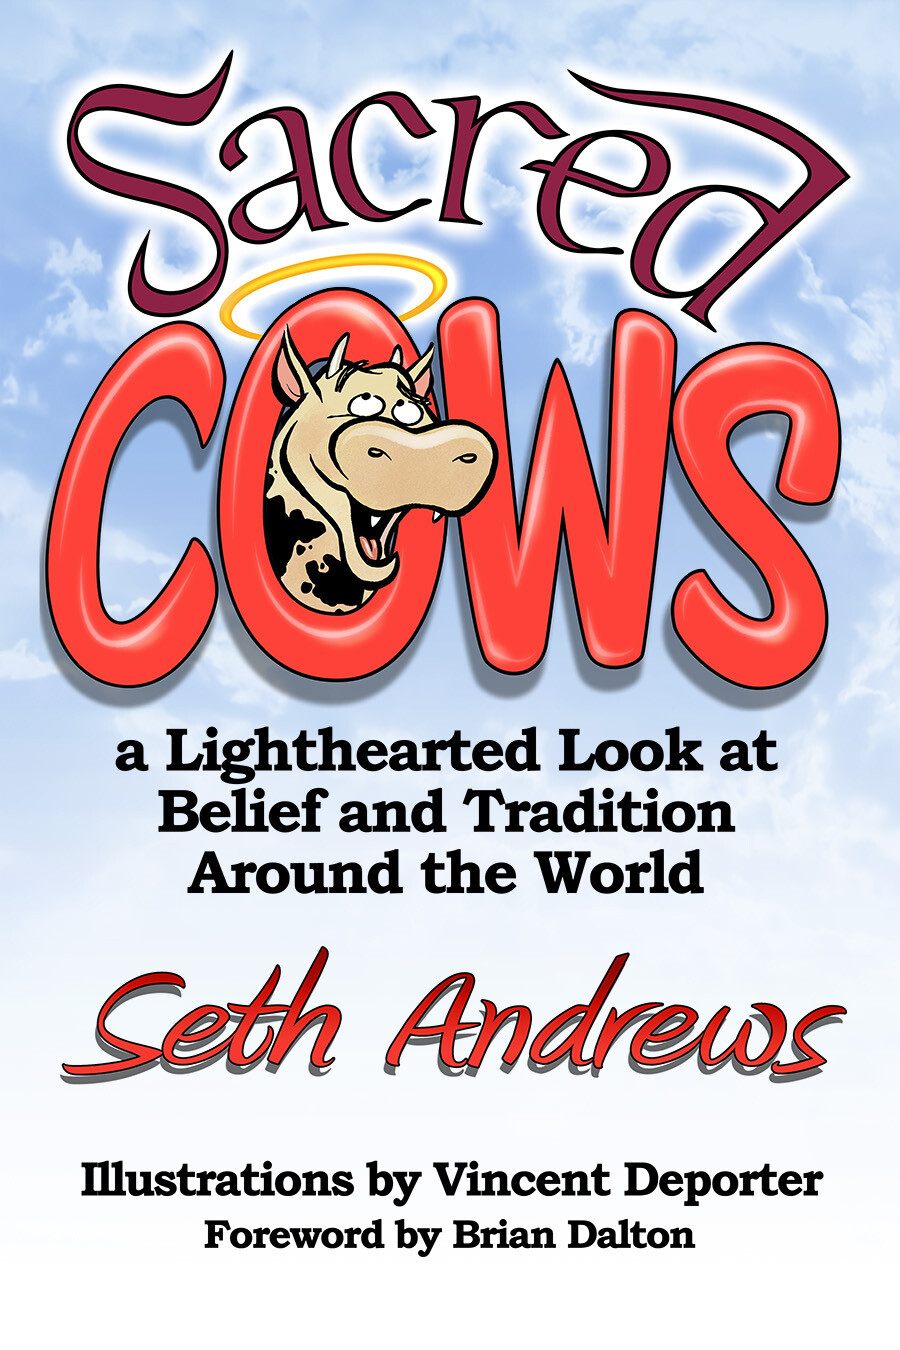 Sacred Cows: A Lighthearted Look at Belief and Tradition Around the World (Autographed.)